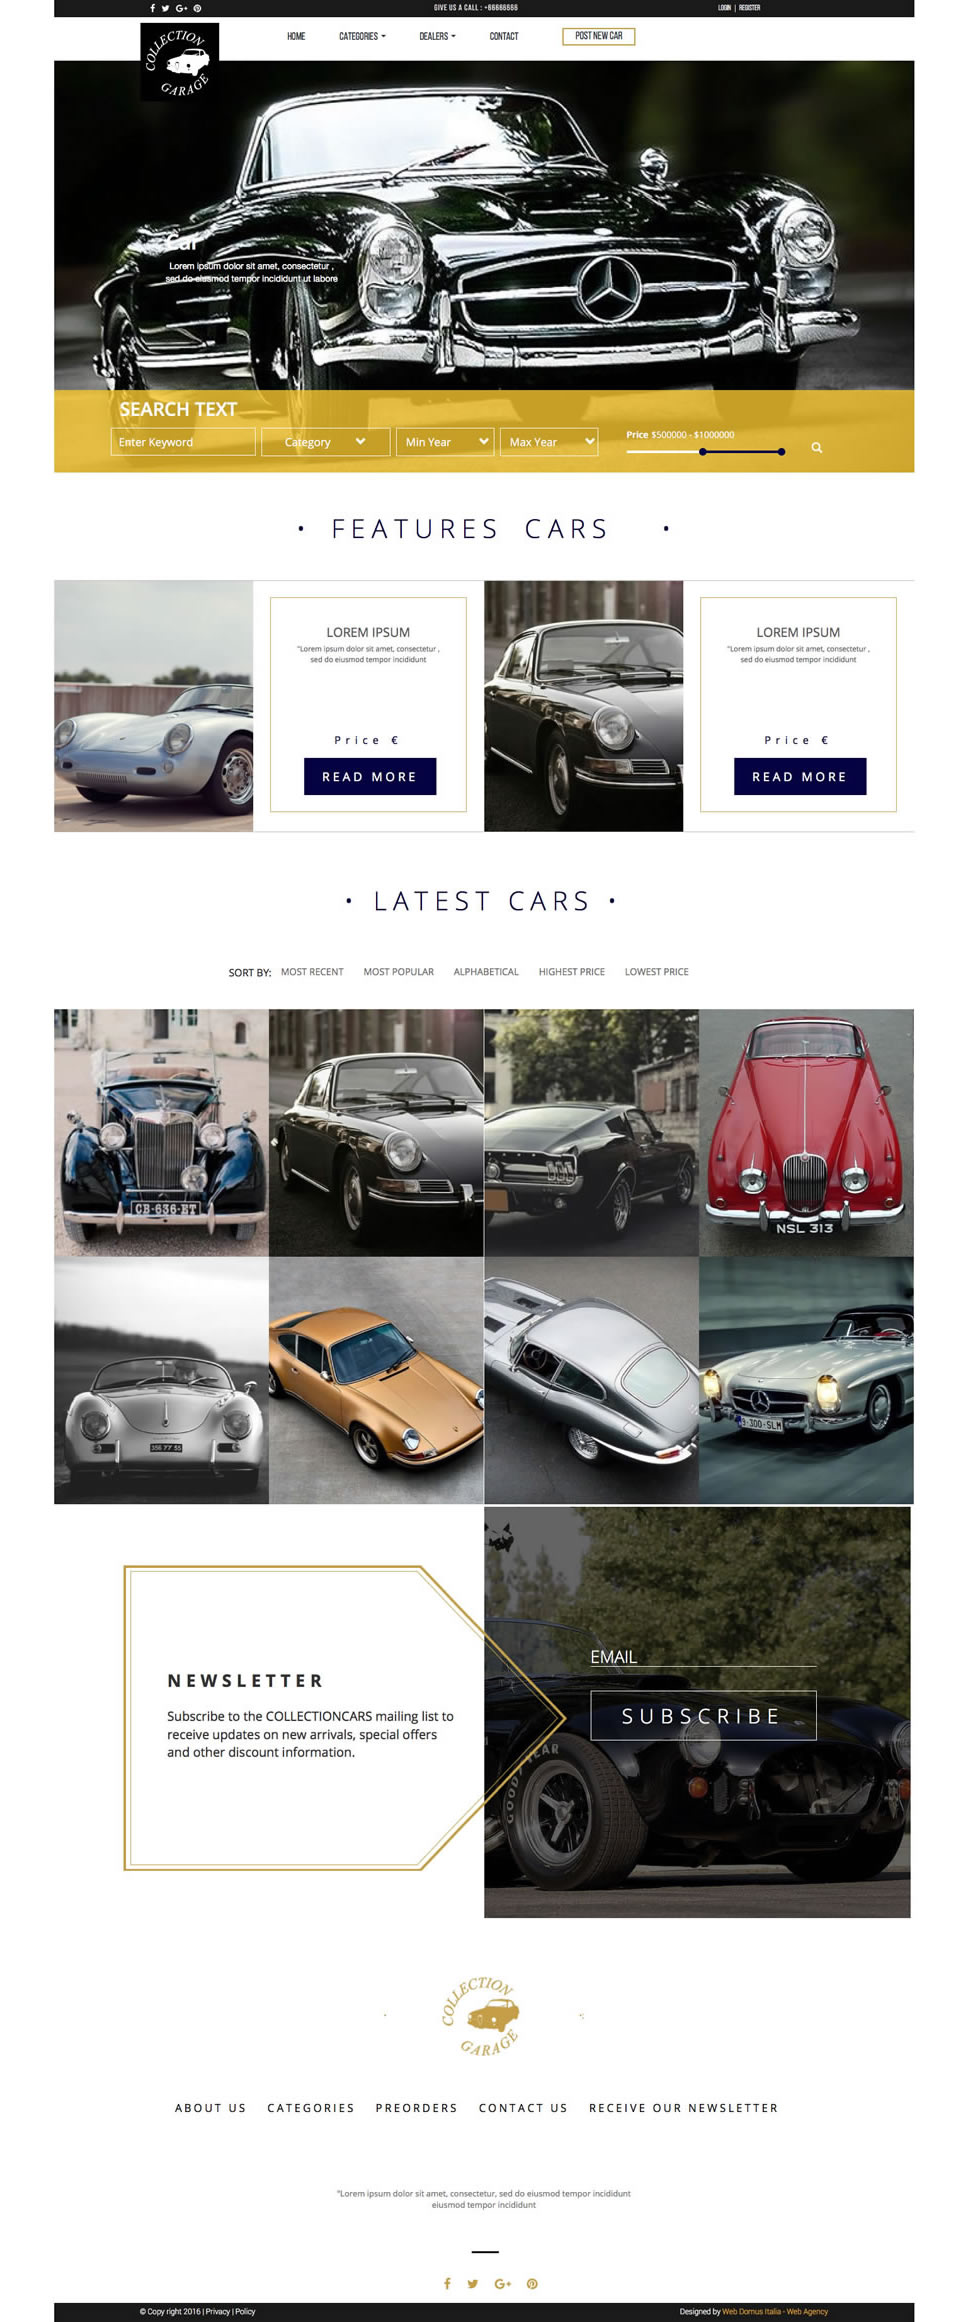 GARAGE - HTML5/CSS3 Template | Free Website Templates